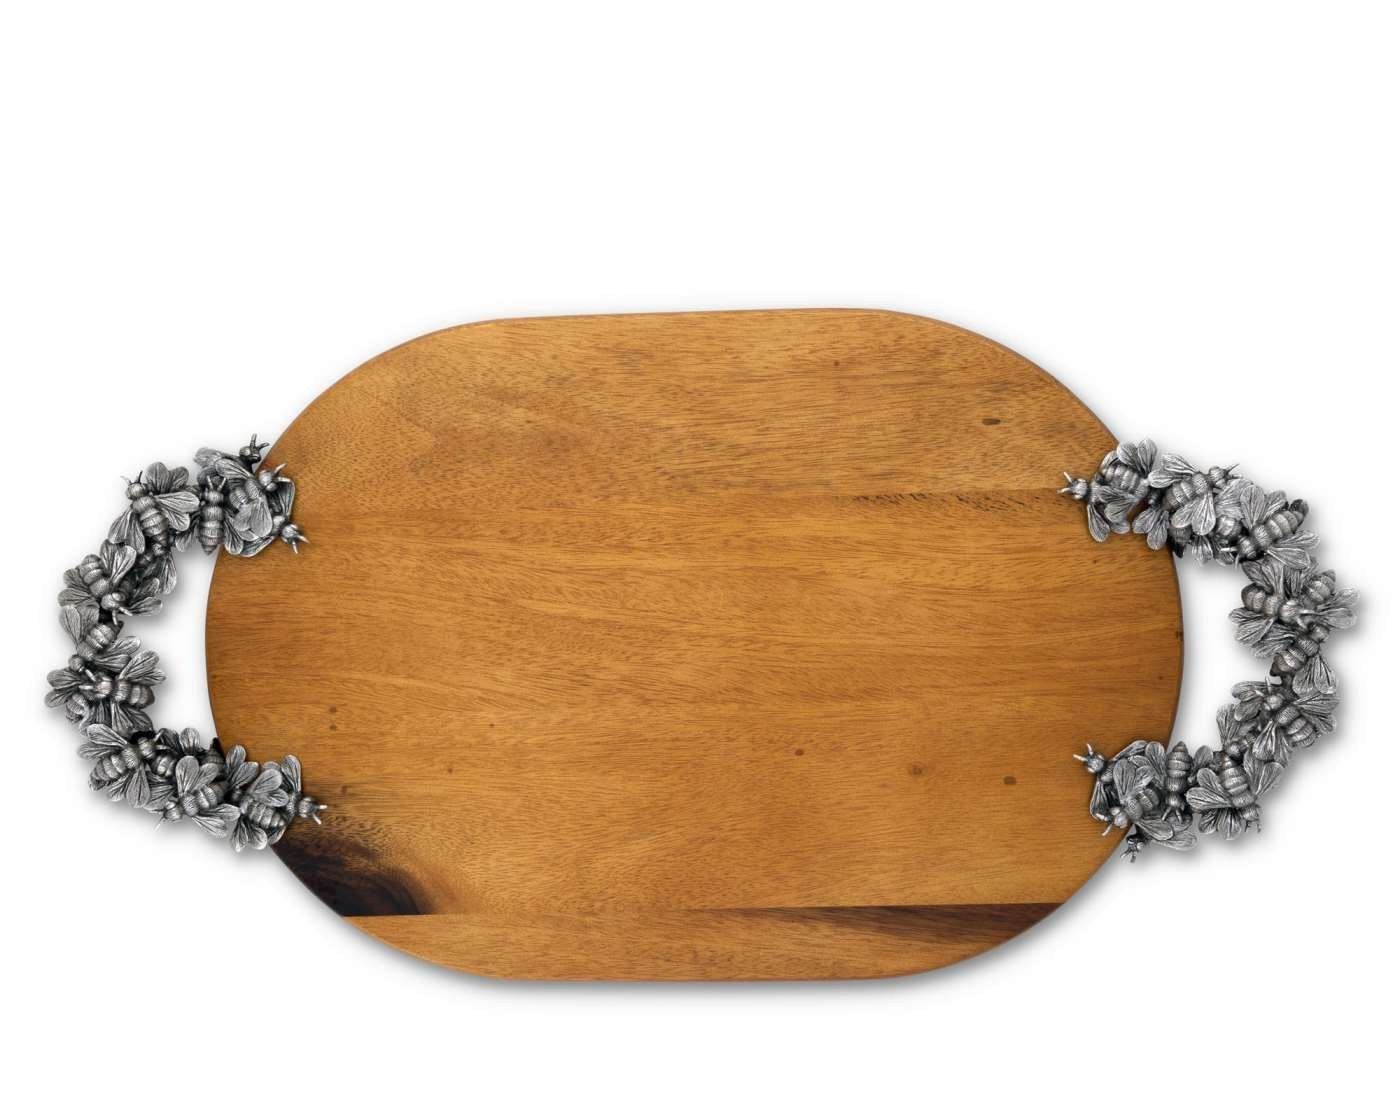 Vagabond House Oval Cheese Tray - Arche of Bee